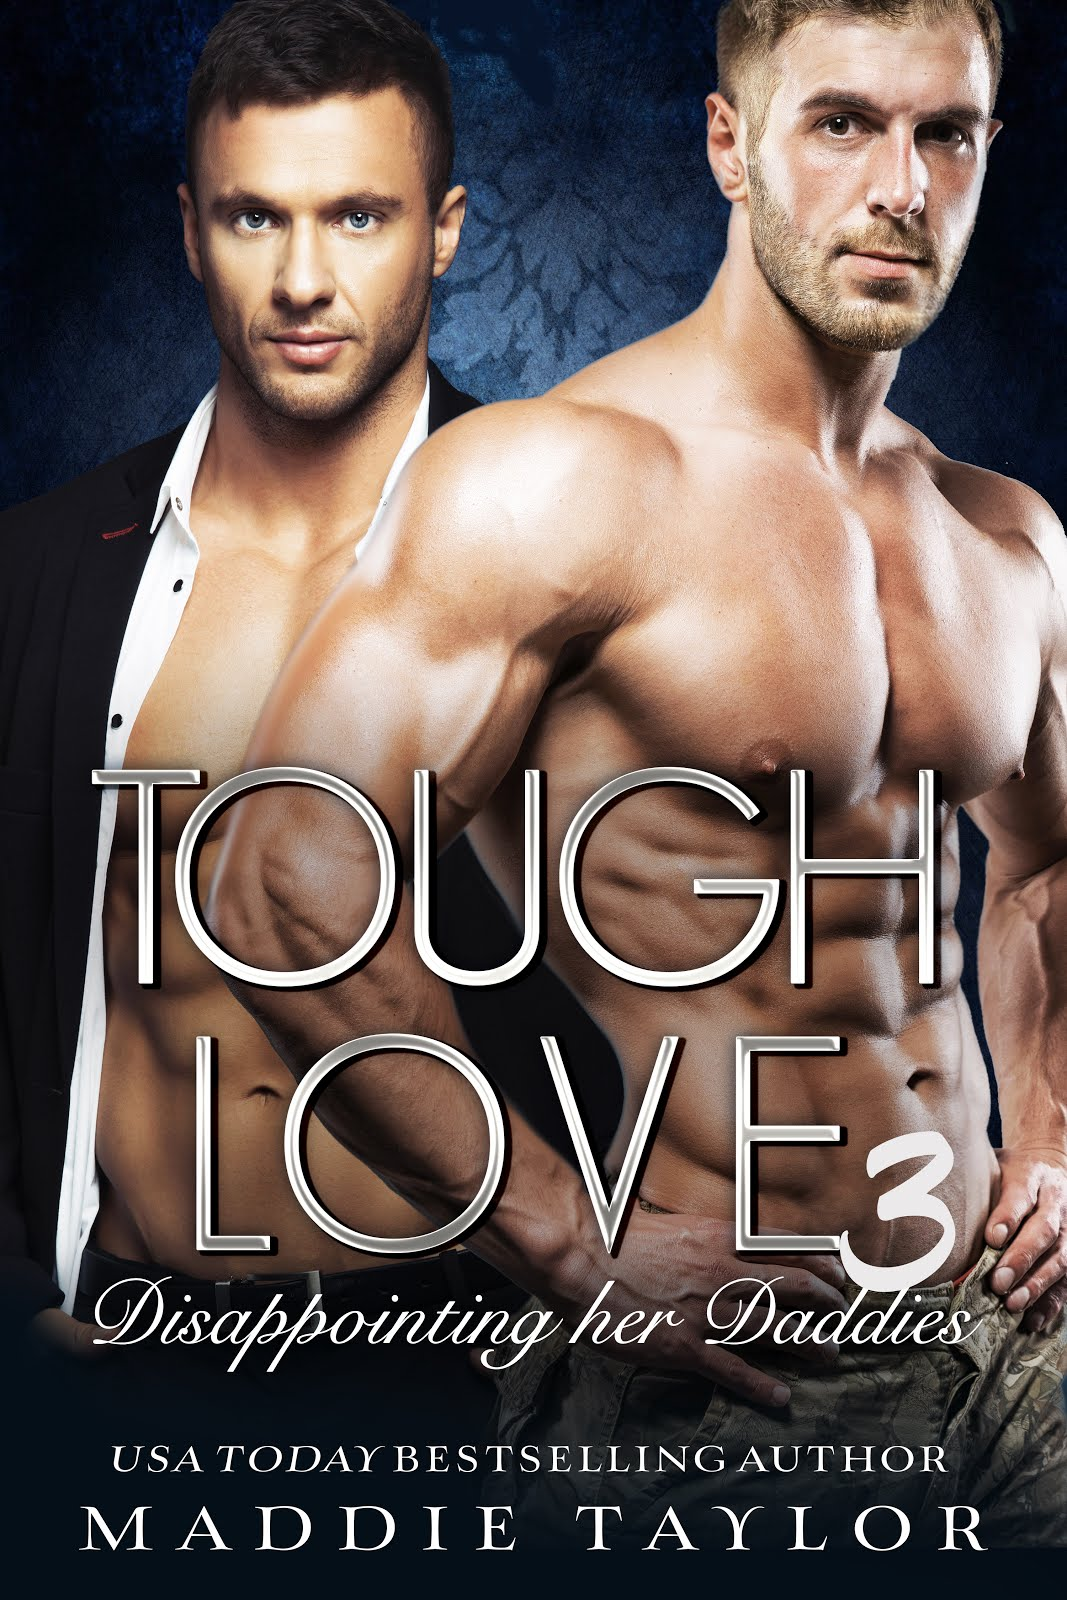 Tough Love 3: Disappointing Her Daddies